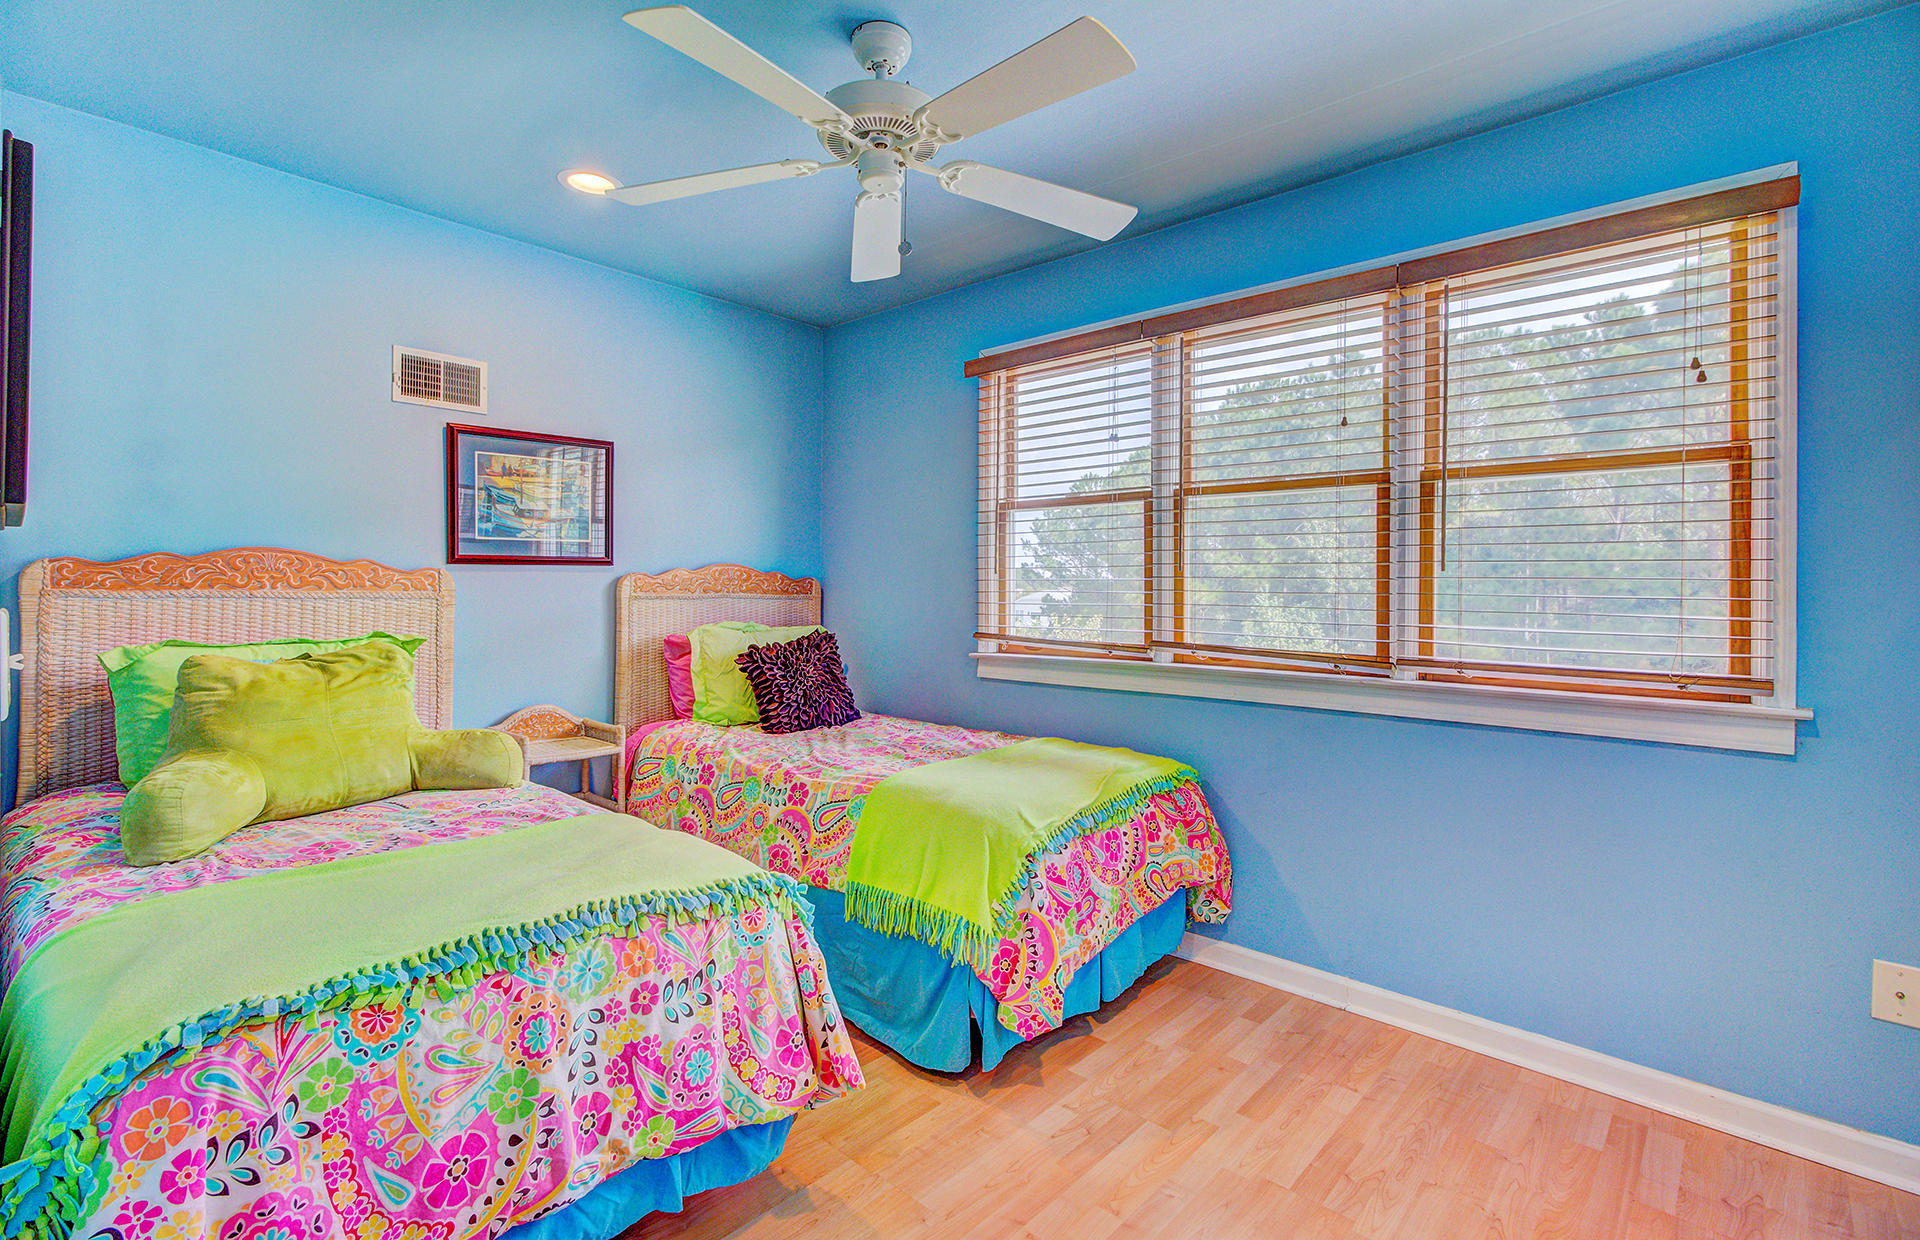 Rivertowne On The Wando Homes For Sale - 2073 Willbrook, Mount Pleasant, SC - 4